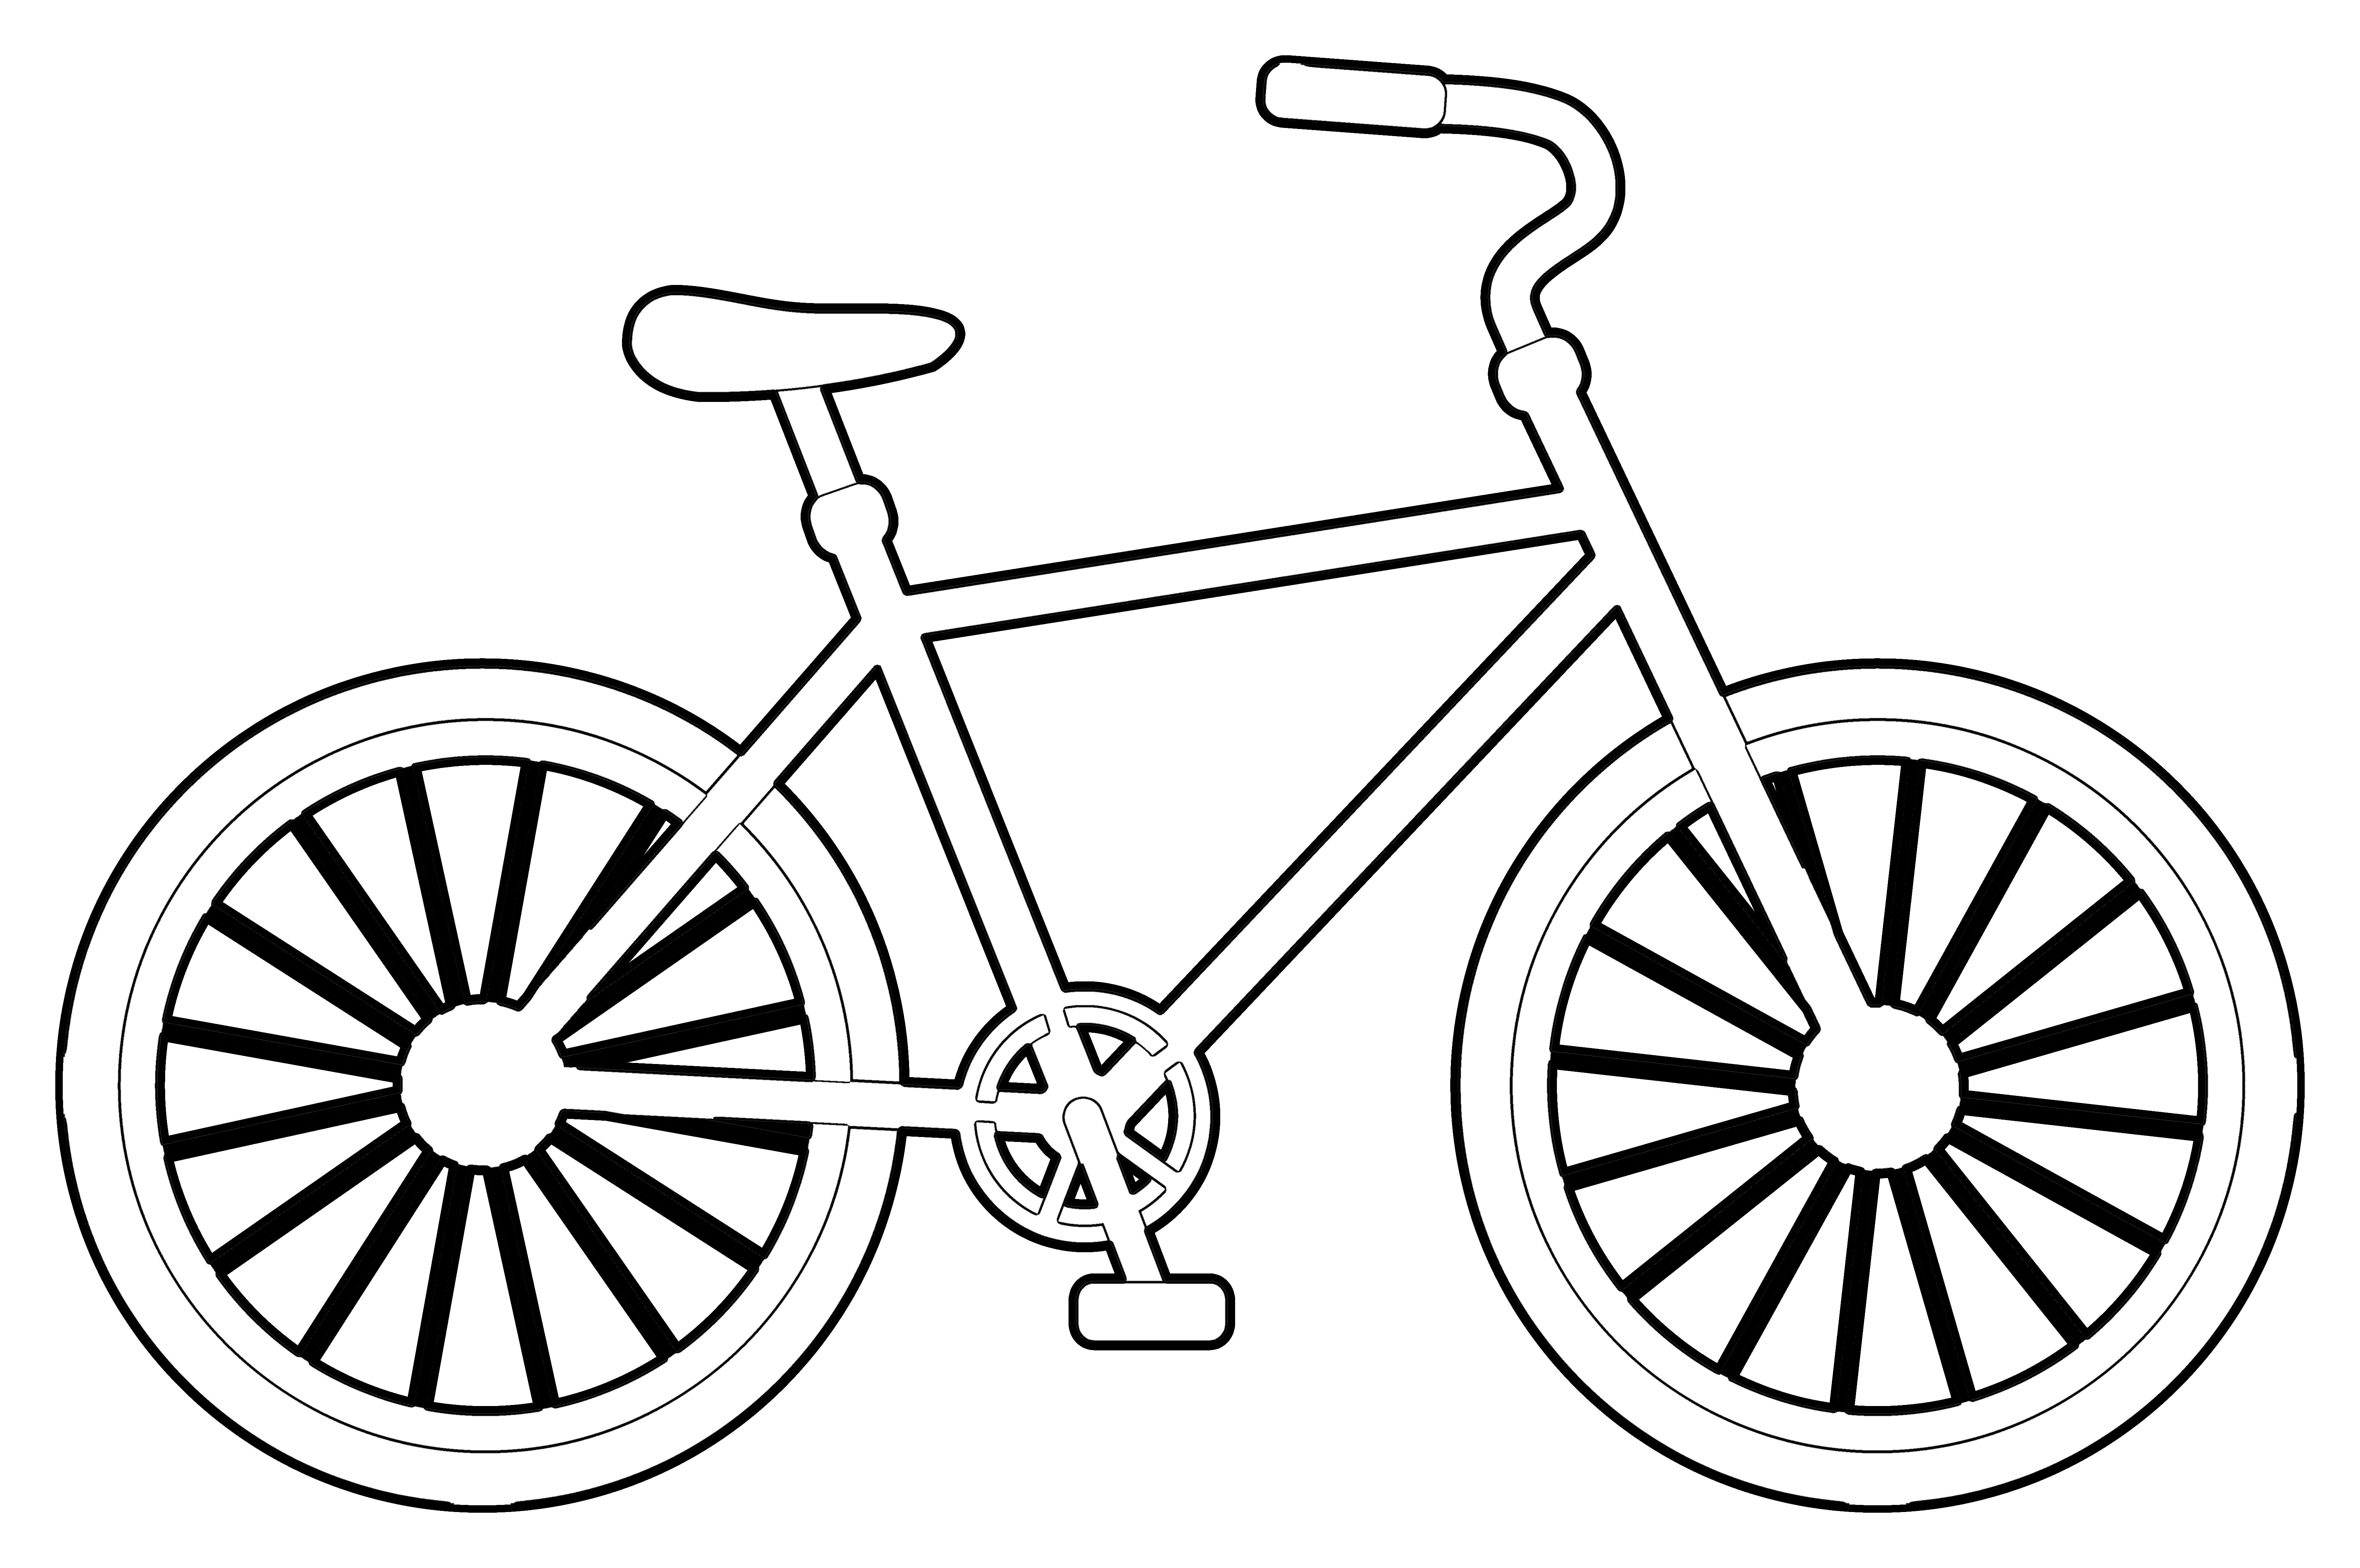 It is an image of Gutsy Bike Coloring Page